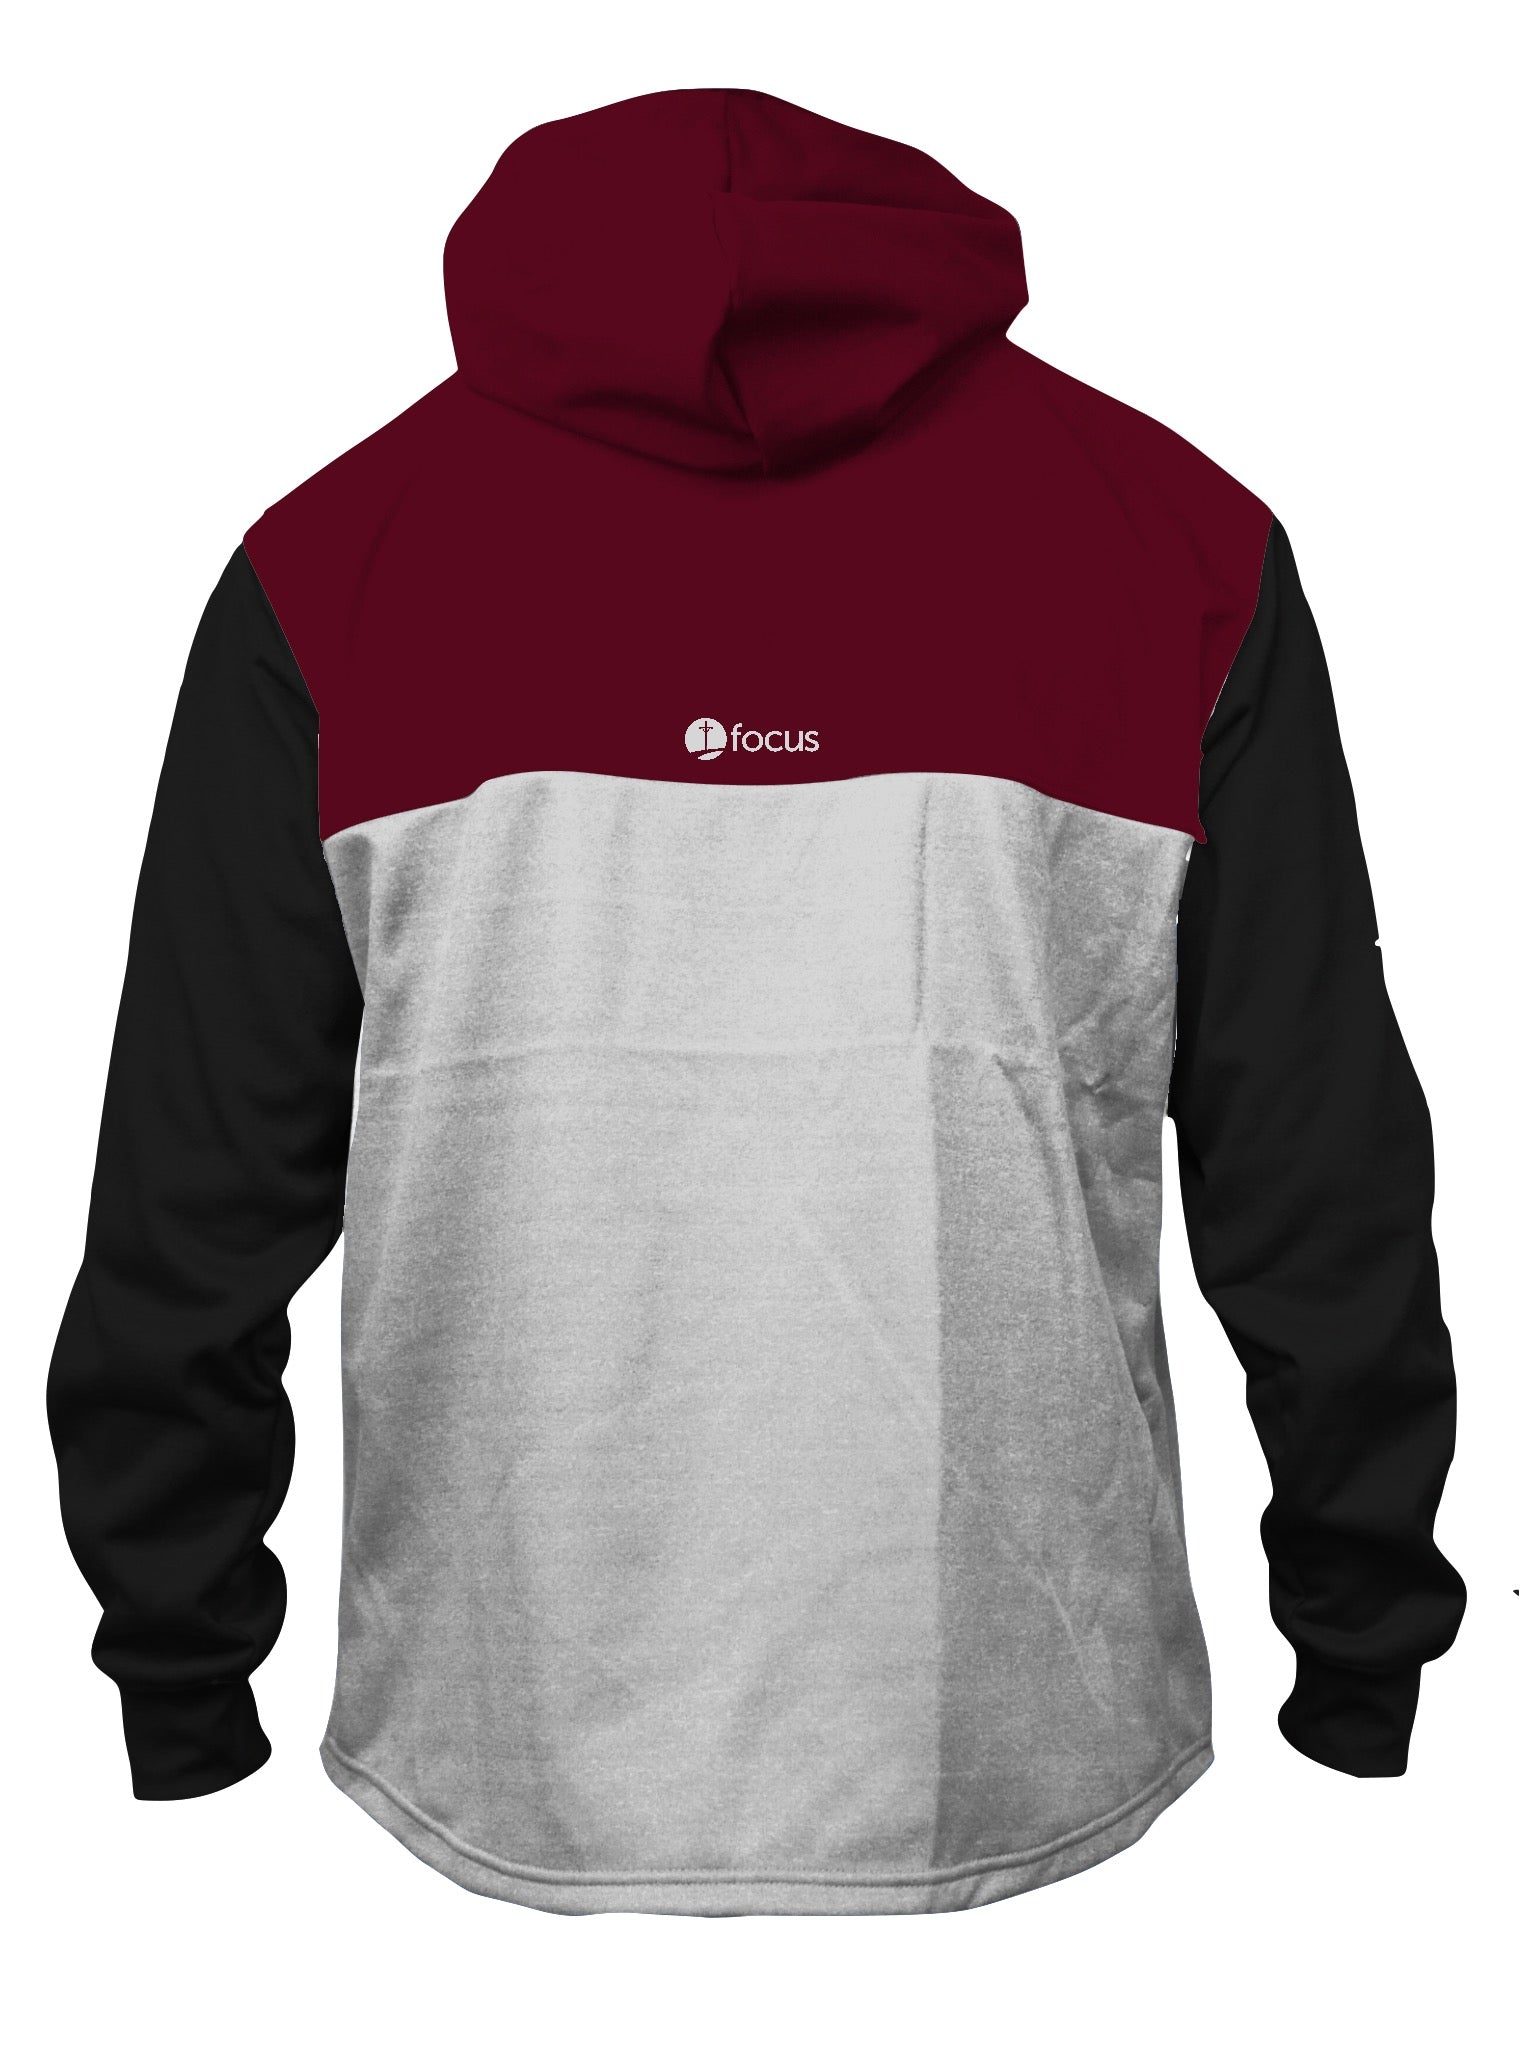 FOCUS Maroon/Black Paneled Quarter Zip